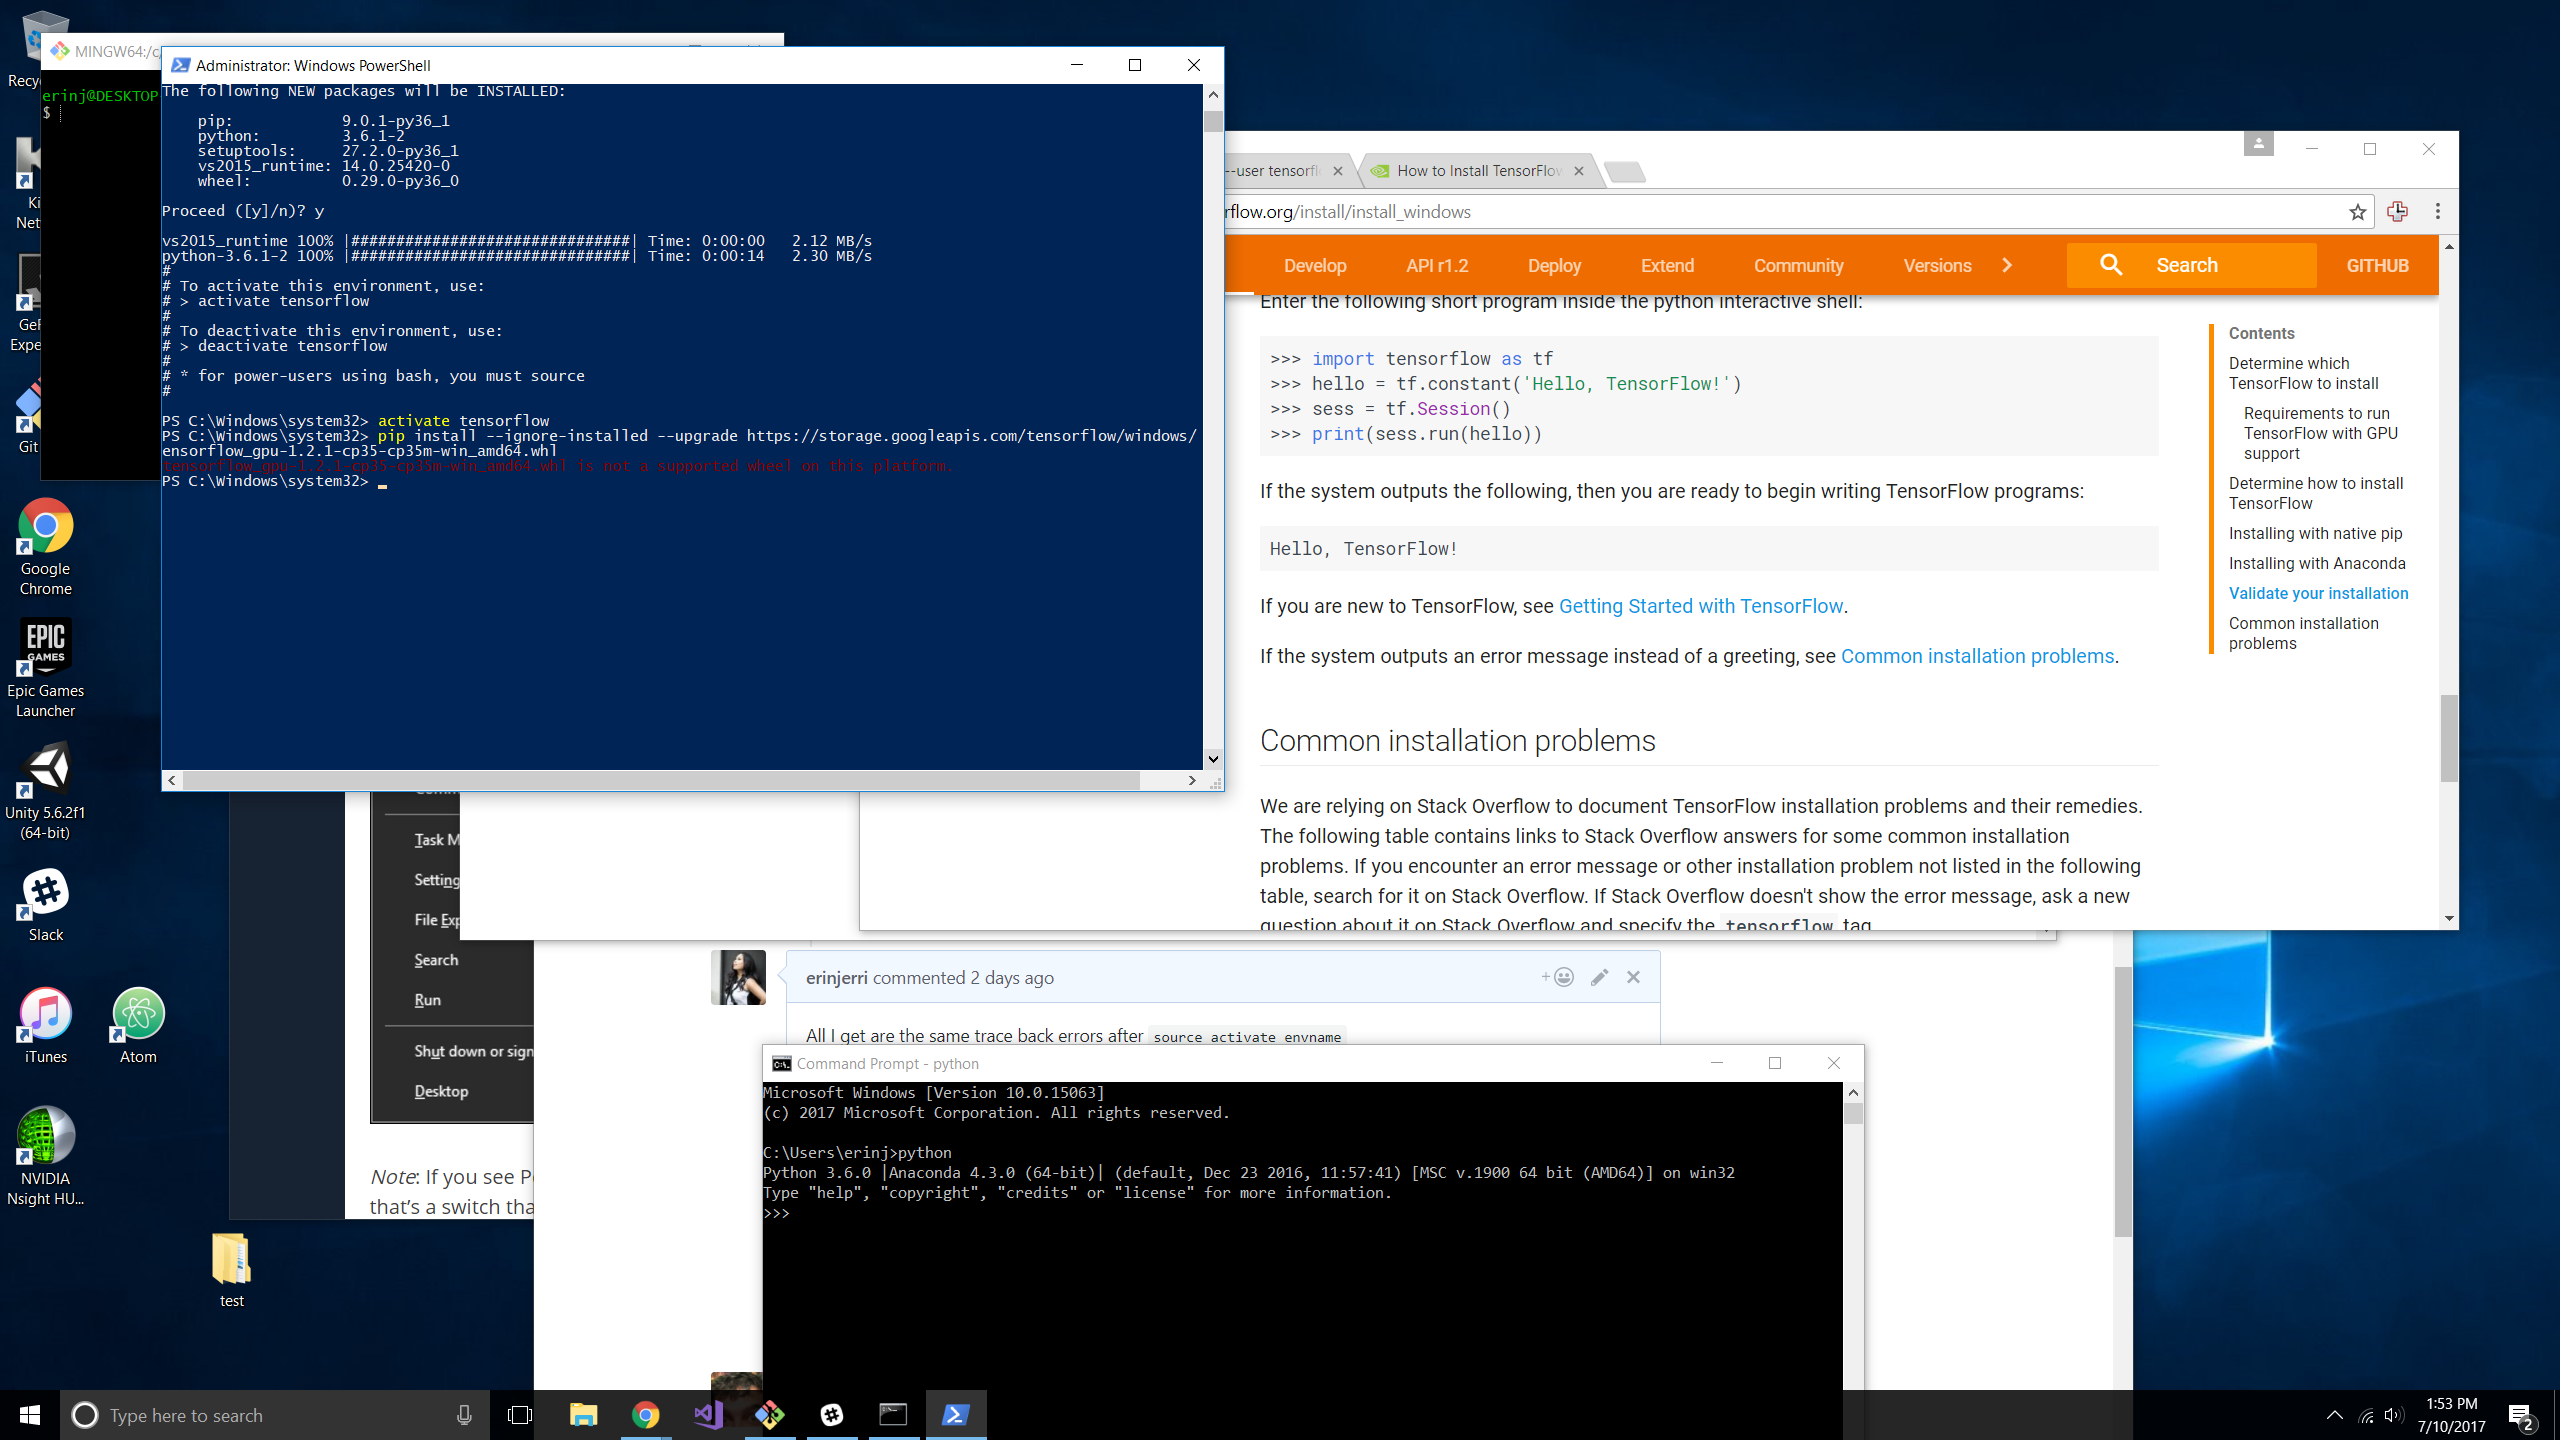 Unable To Install Tensorflow On Windows